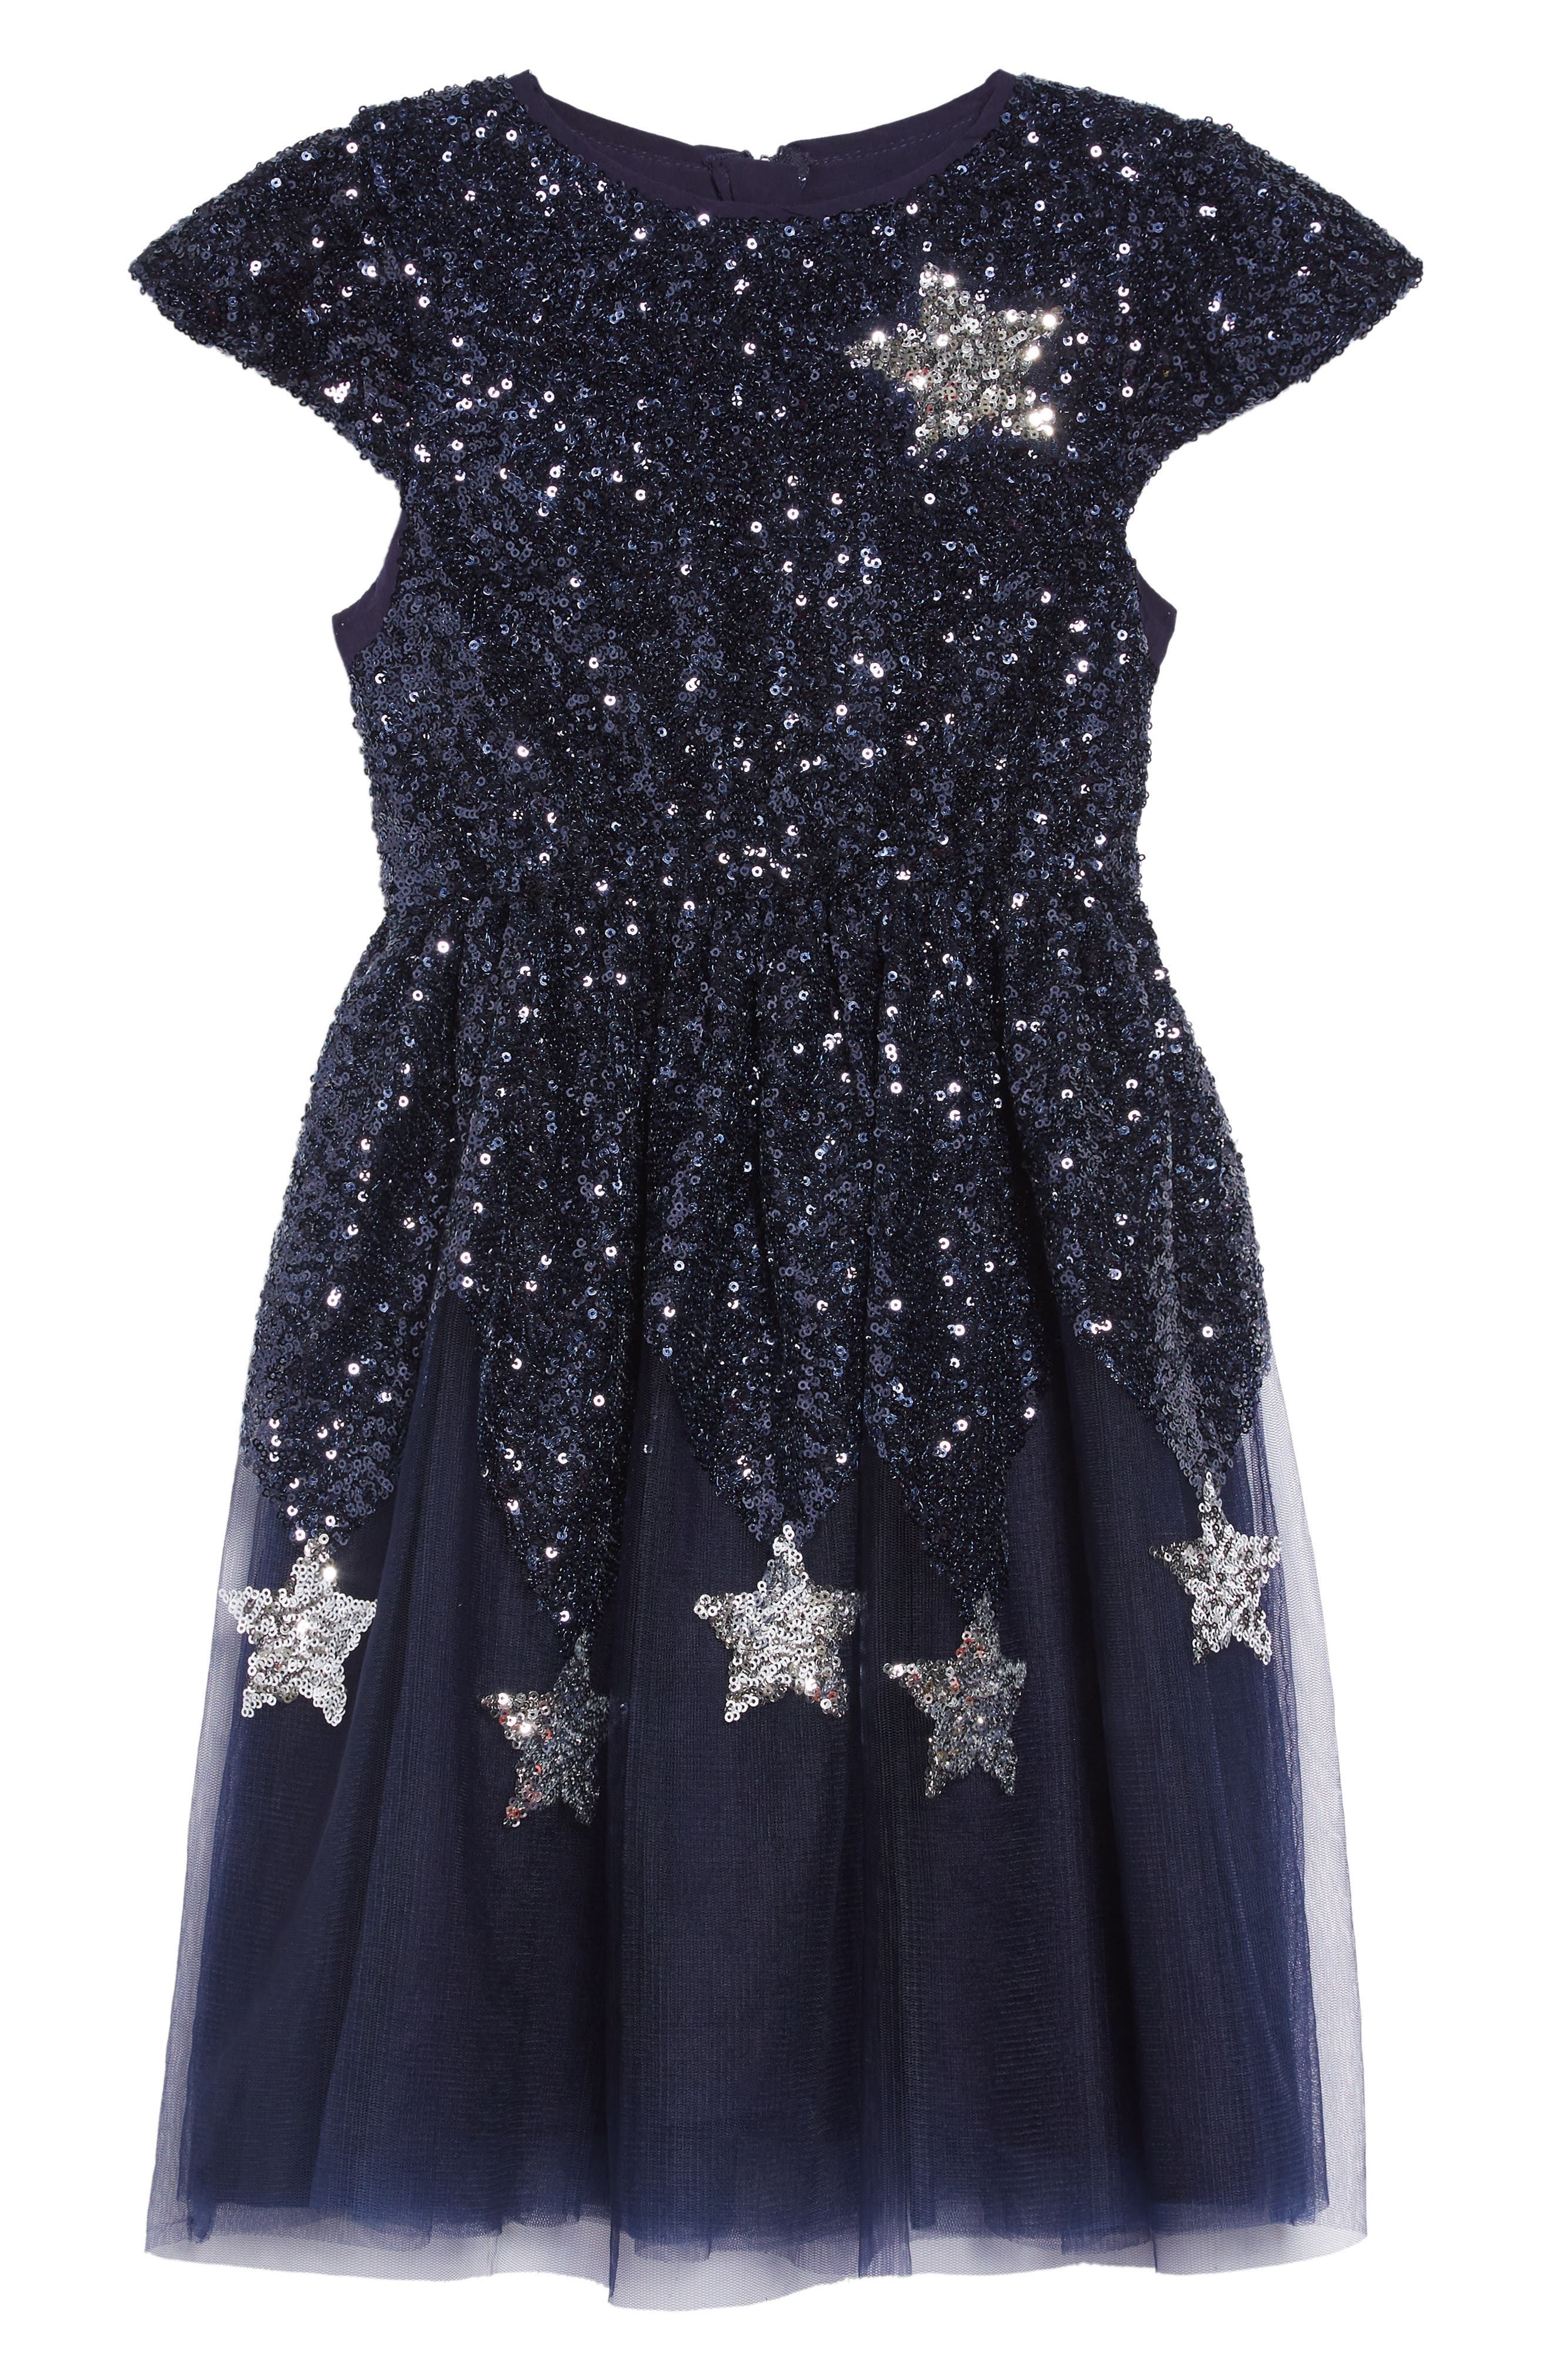 Star Sequin Tulle Dress,                         Main,                         color, NAVY